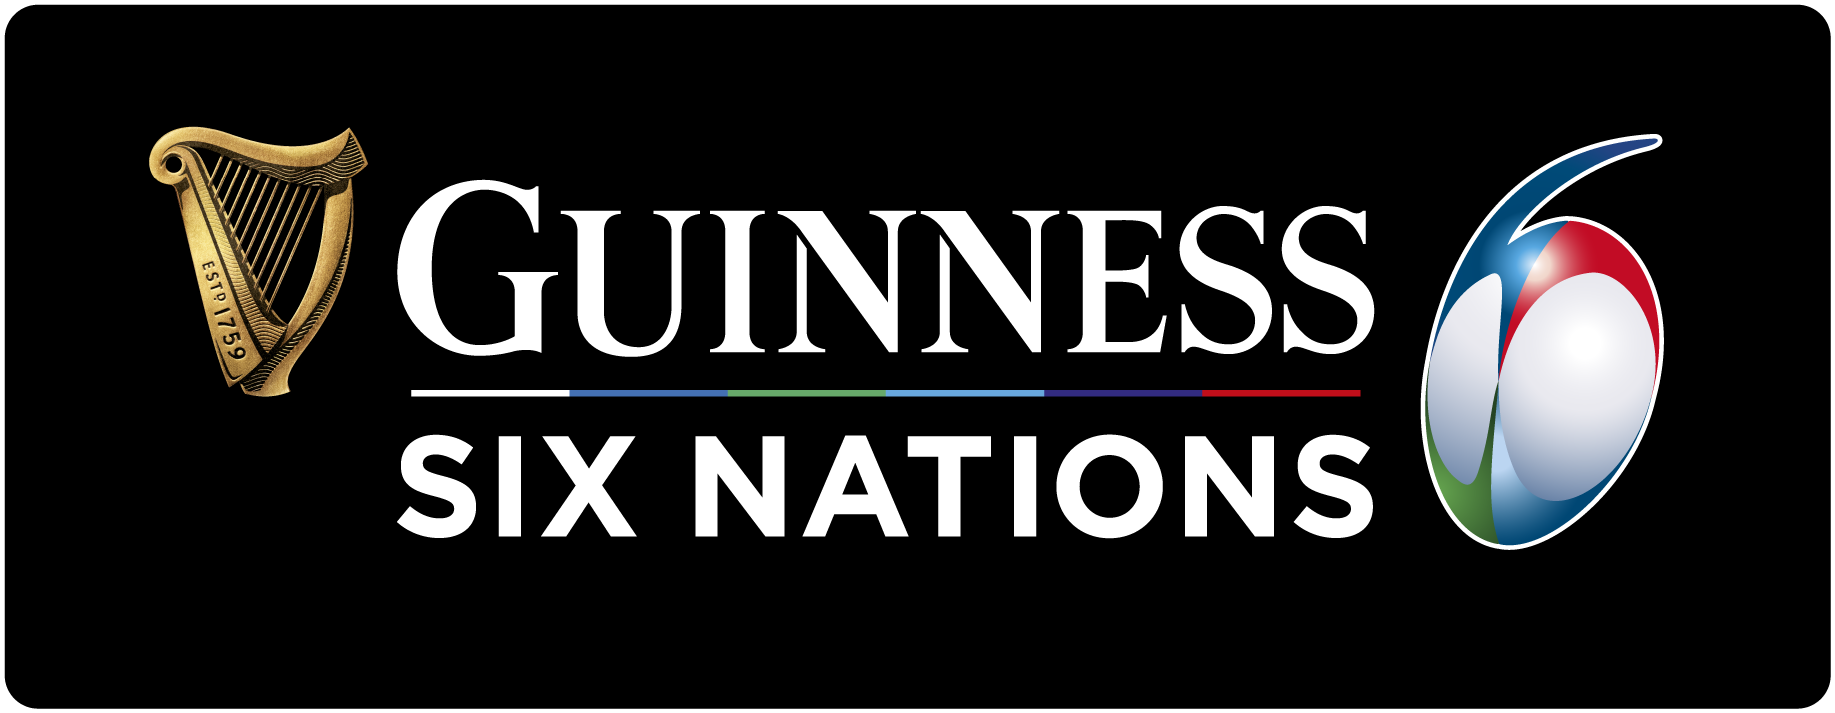 GUINNESS_SIX_NATIONS_LANDSCAPE_STACKED_RGB